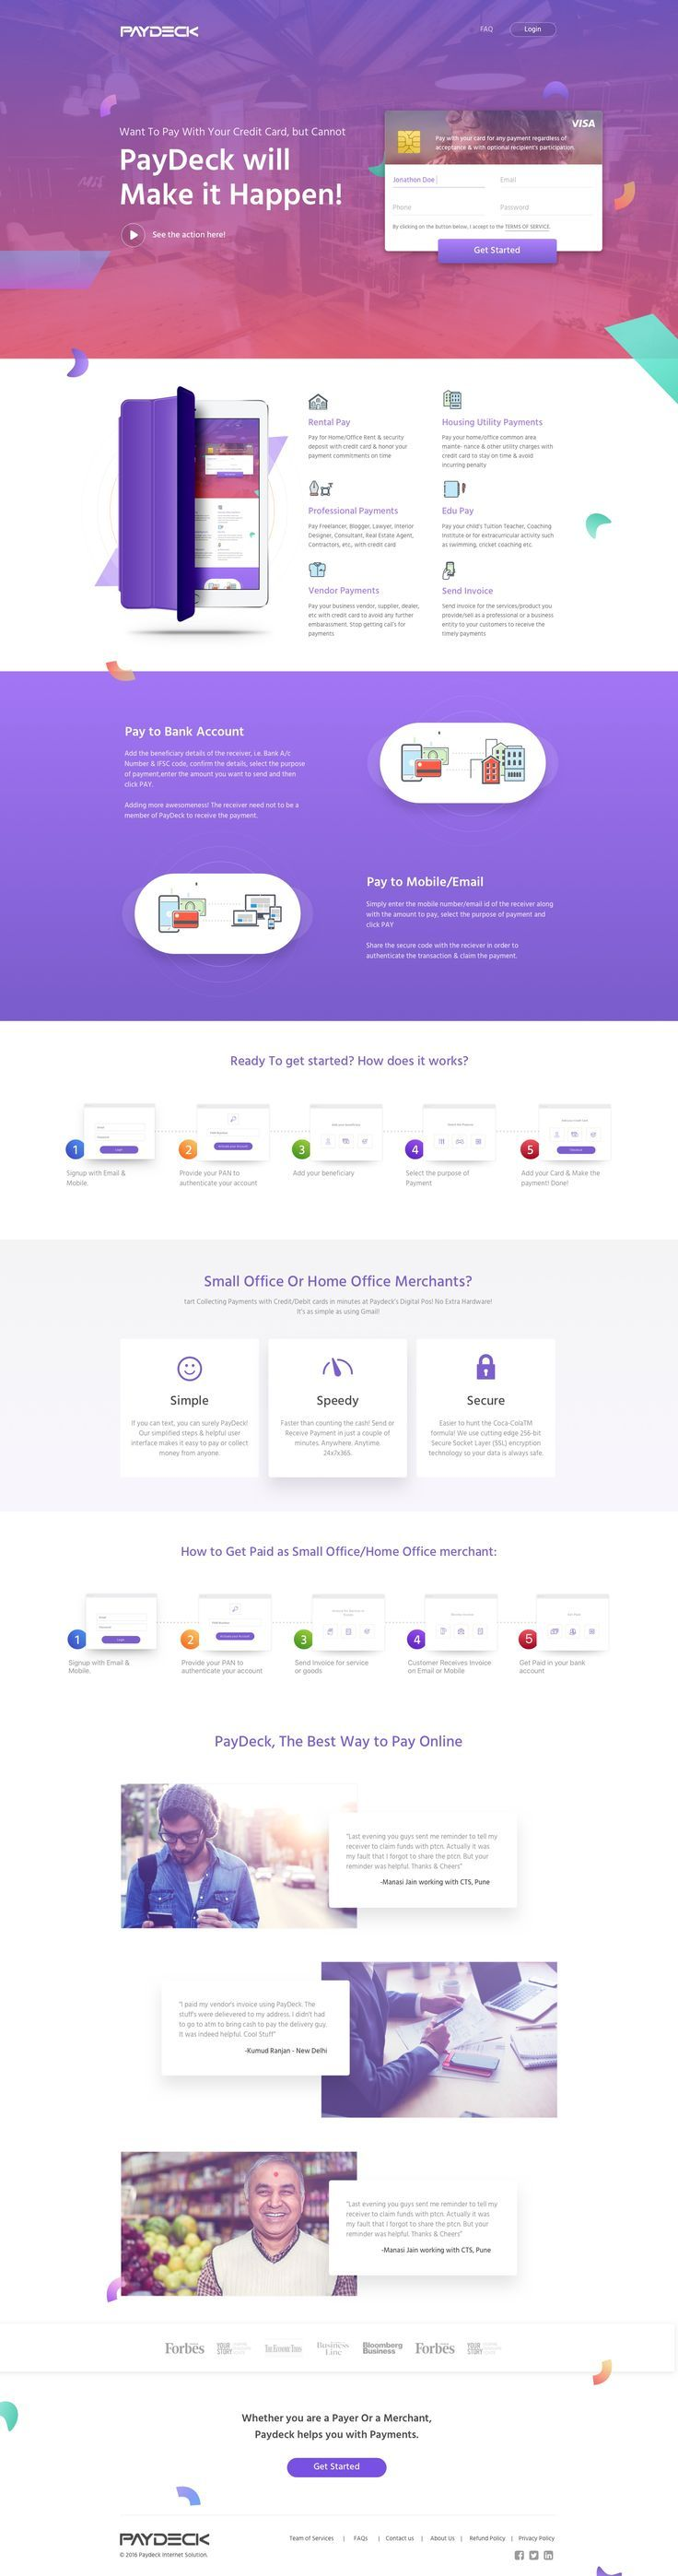 Landing page v 5.1 - - - re-pinned by templatemo. If you like UX, design, or design thinking, check out theuxblog.com podcast https://itunes.apple.com/us/podcast/ux-blog-user-experience-design/id1127946001?mt=2